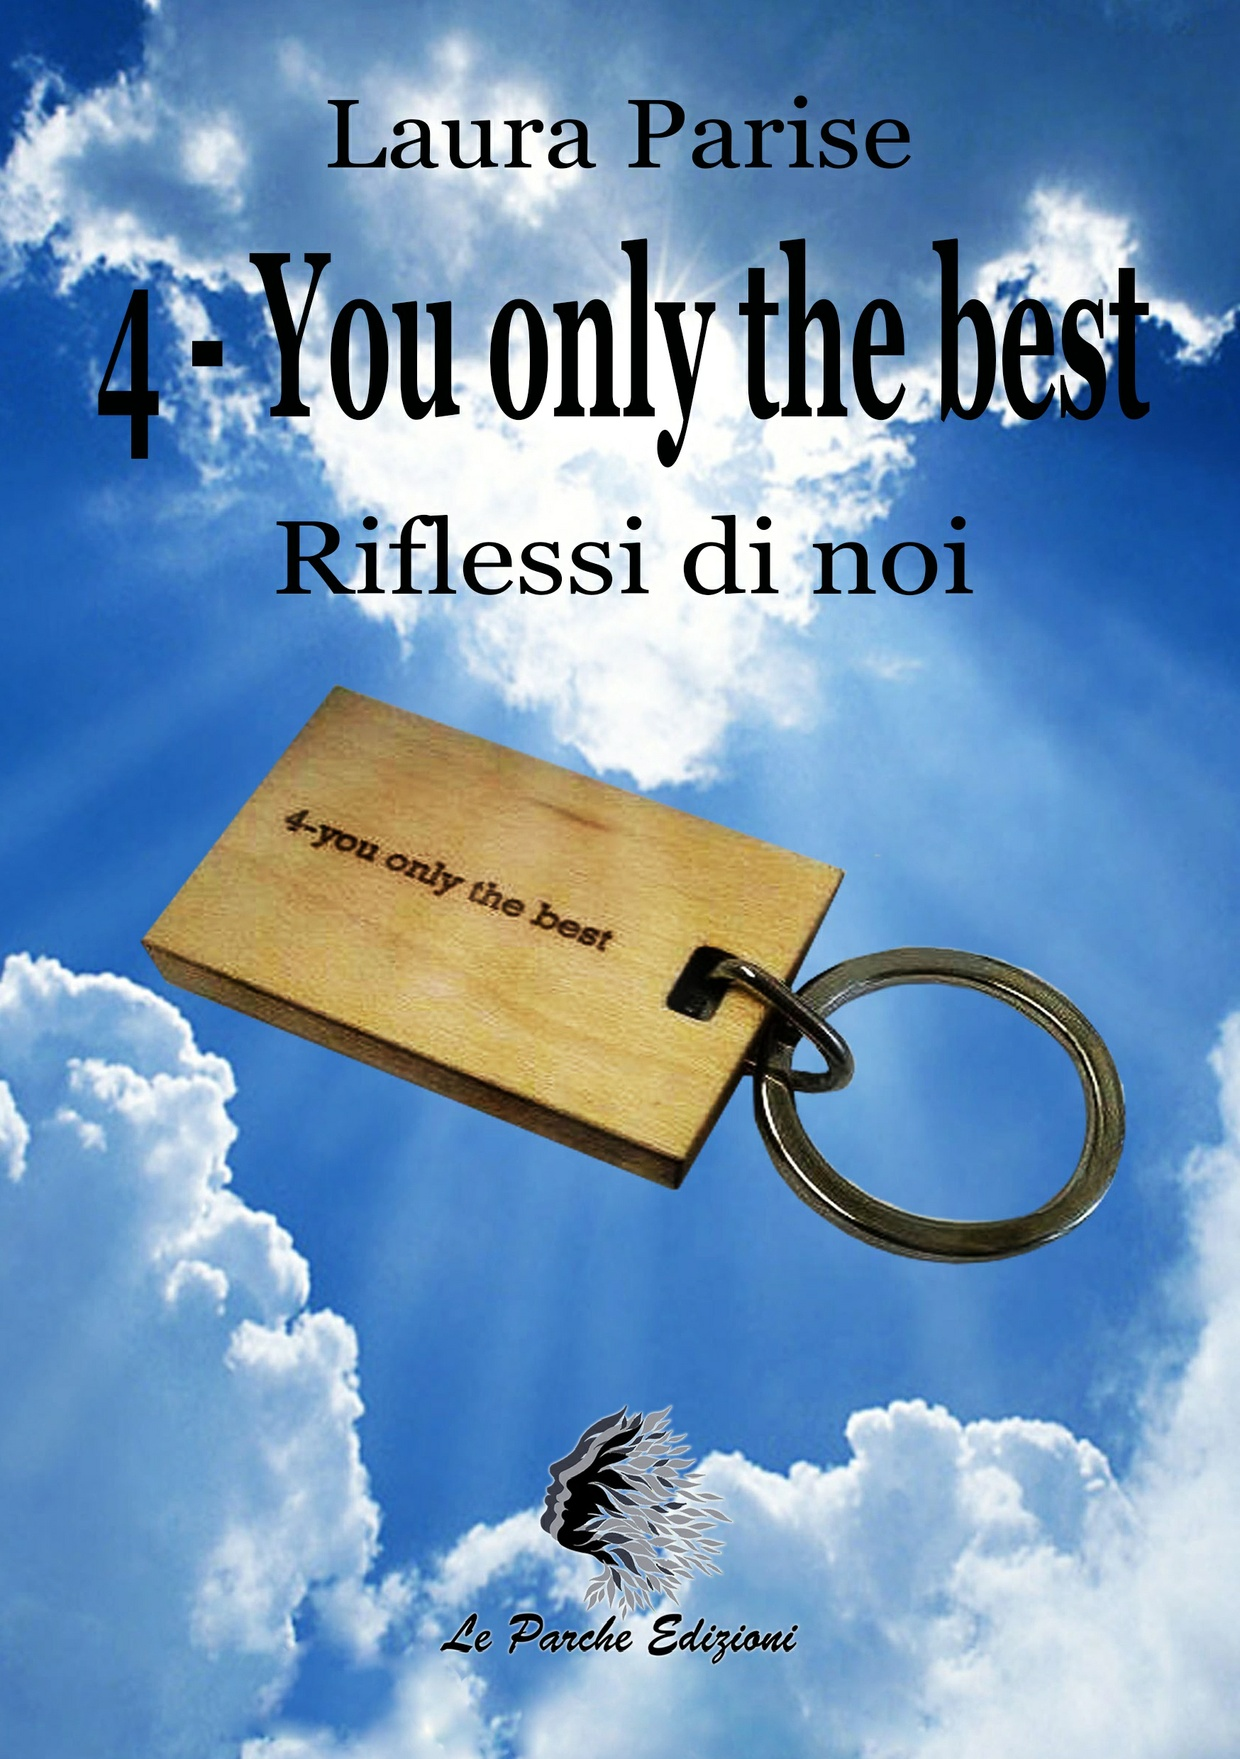 4-You only the best - Riflessi di Noi